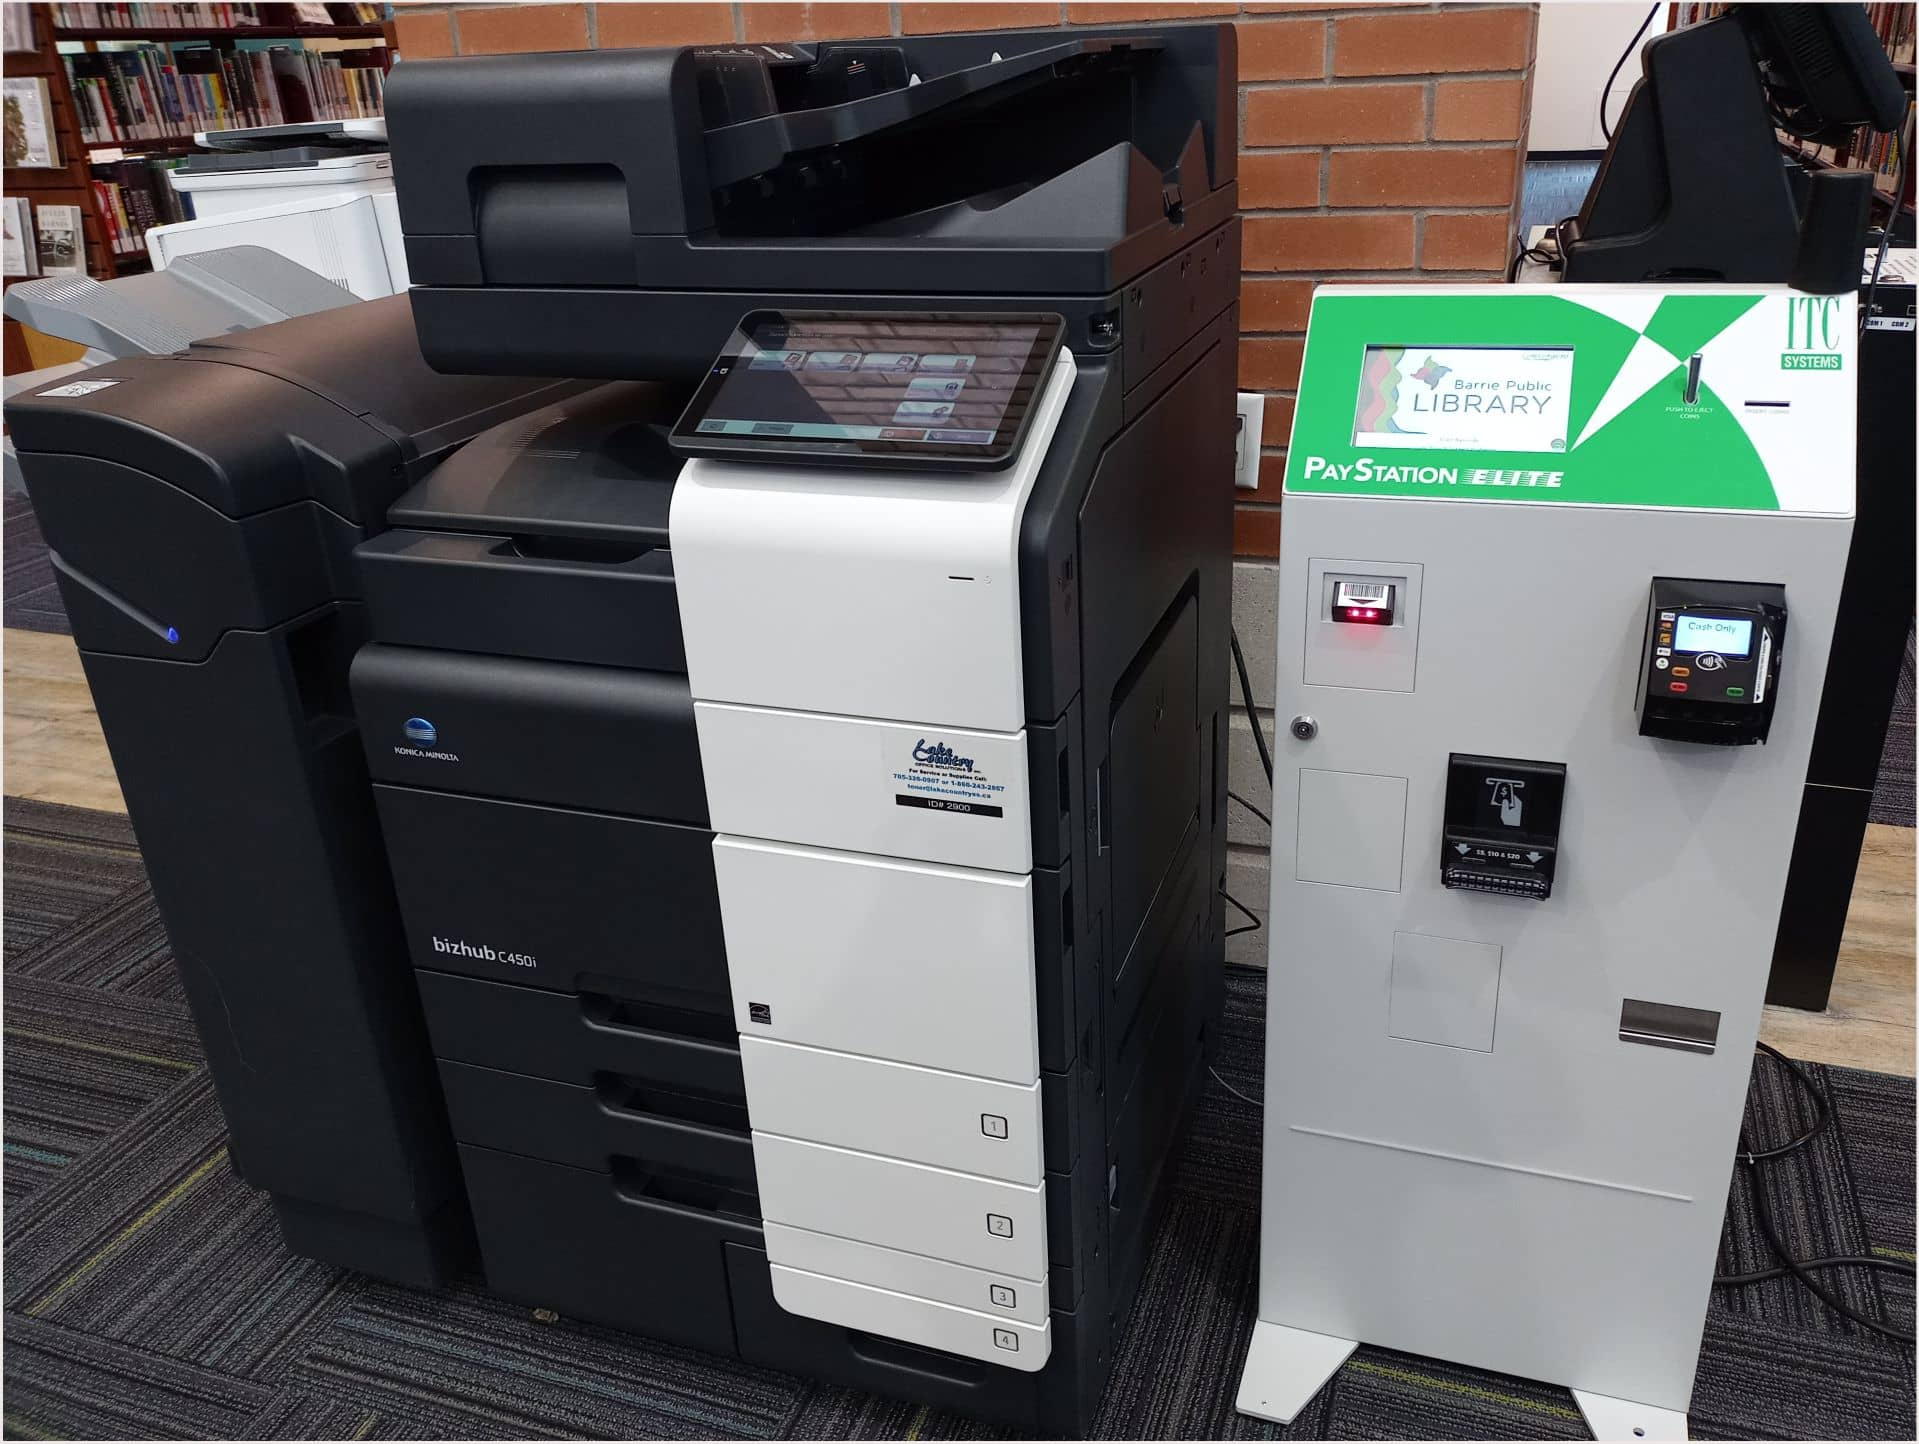 Photo of a printer and kiosk at the Downtown library.